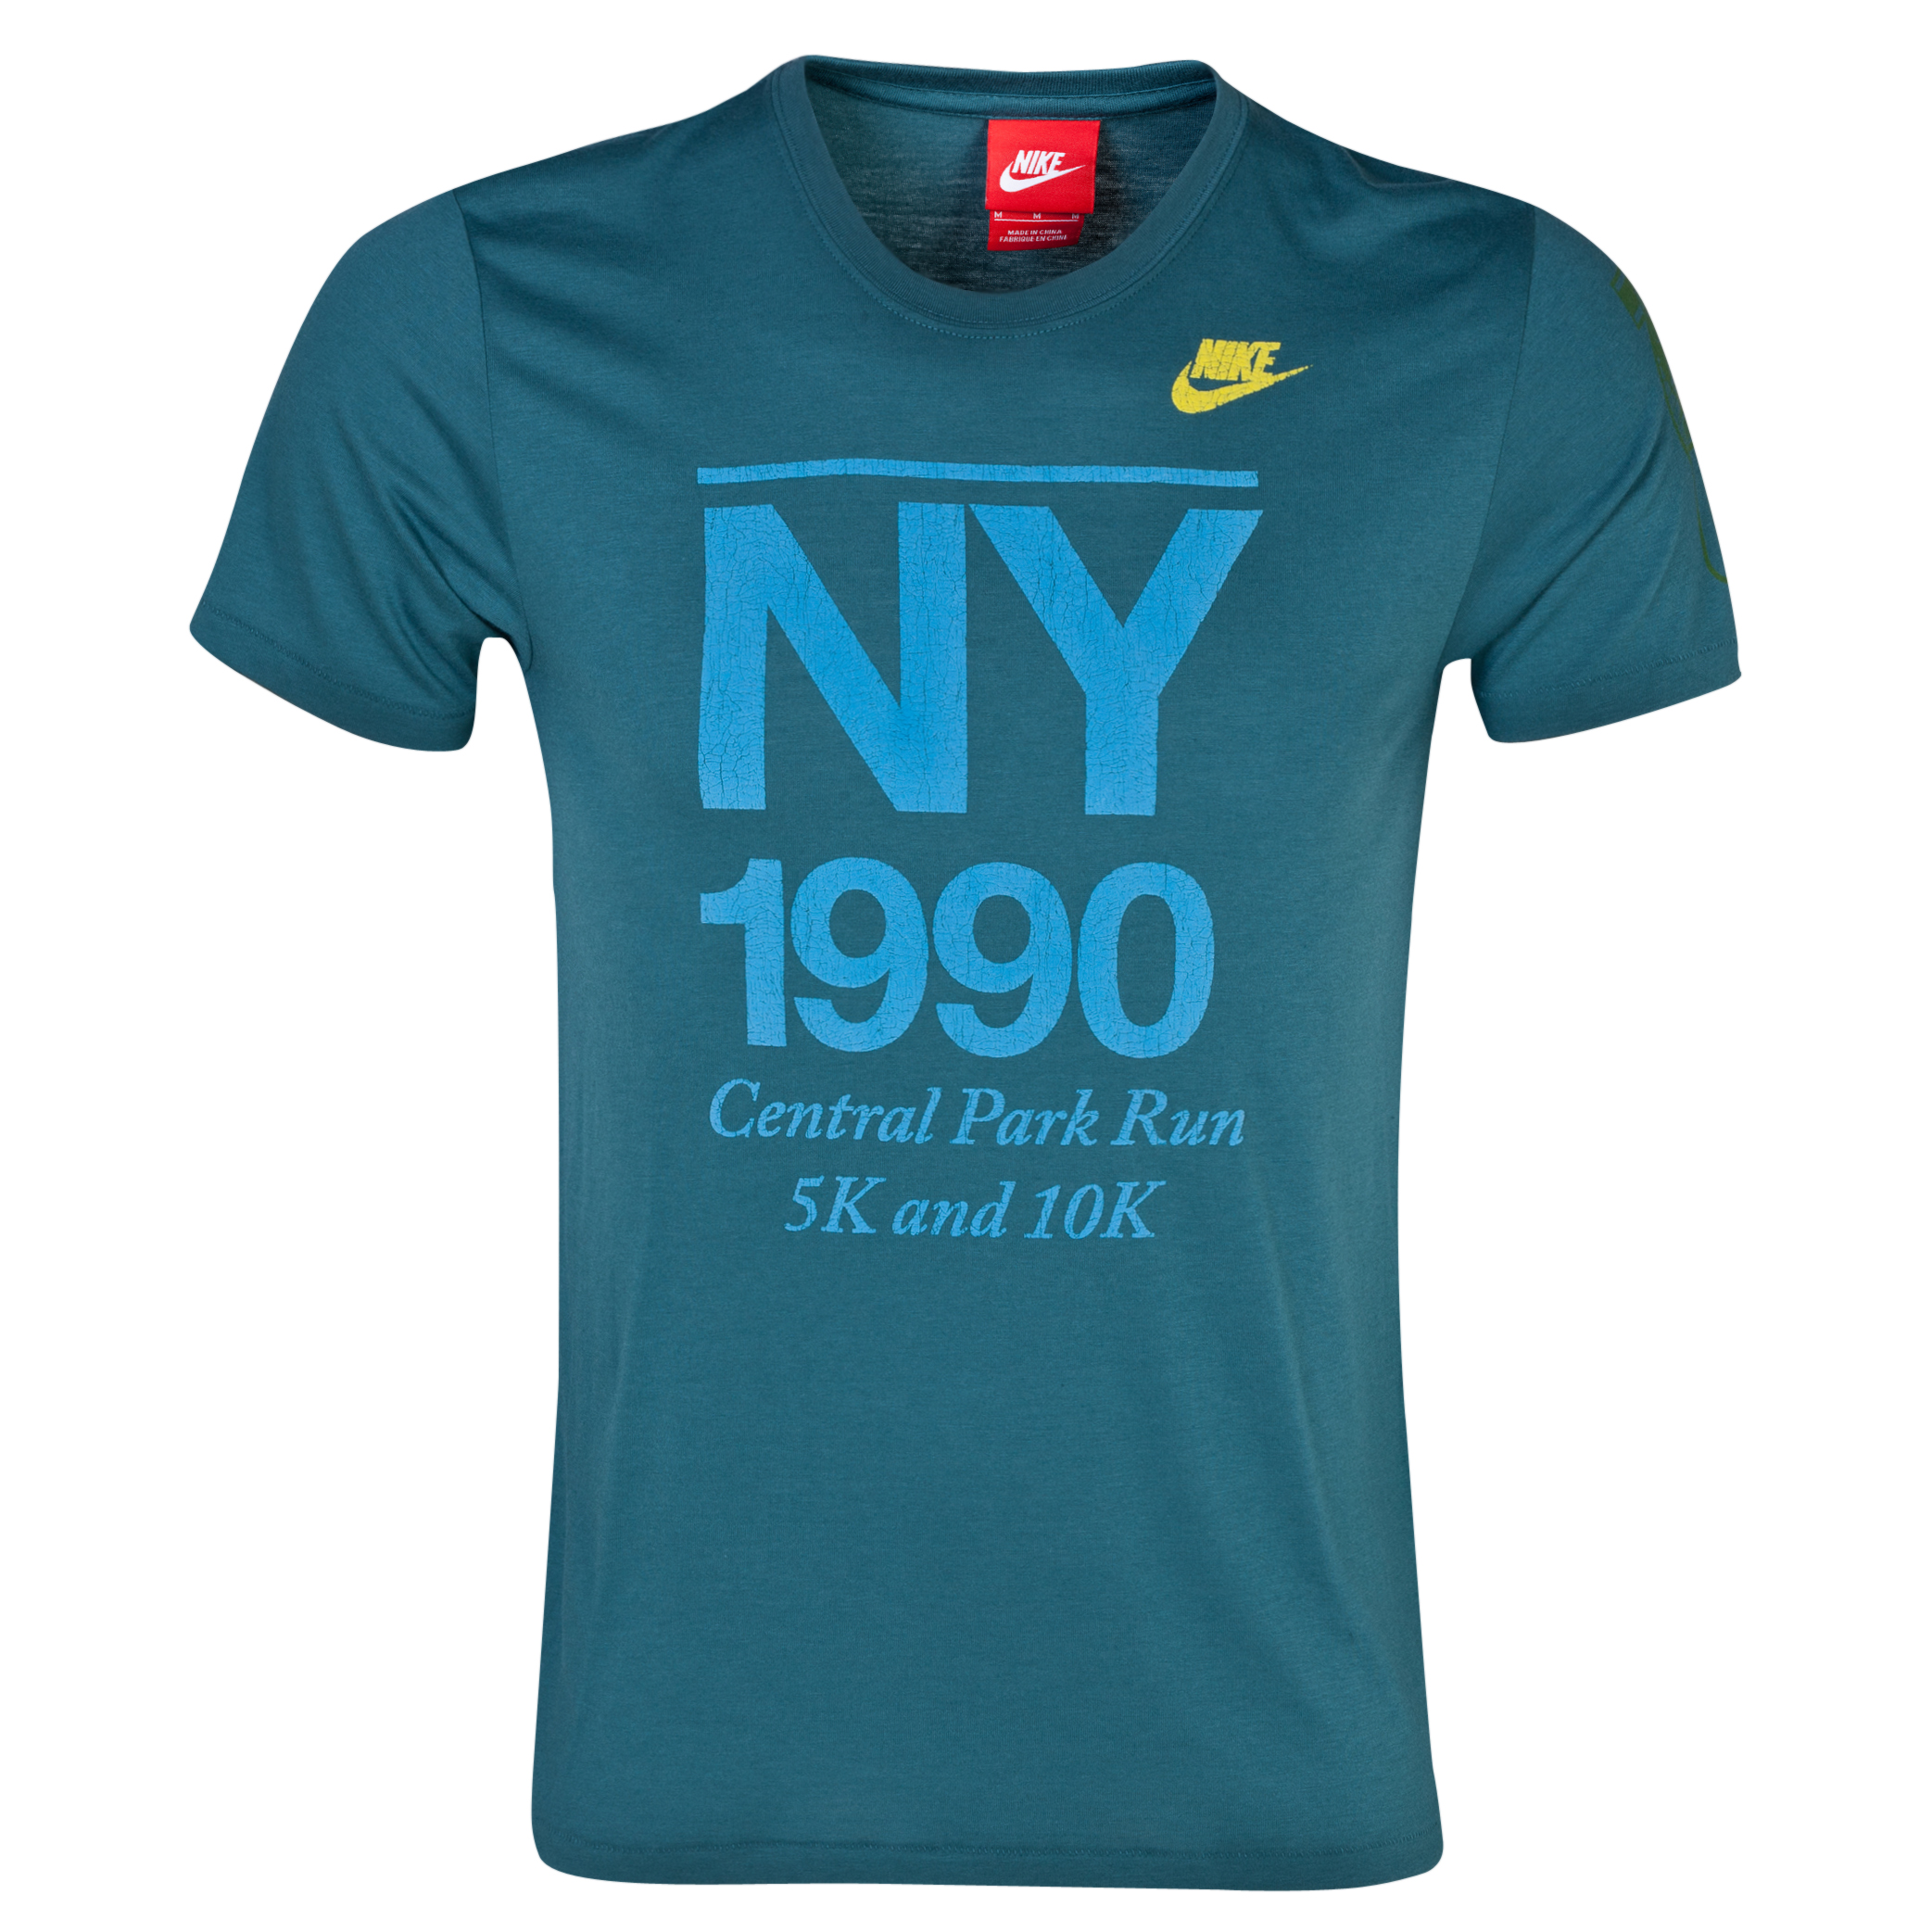 Nike Glory Top NY Tee Navy